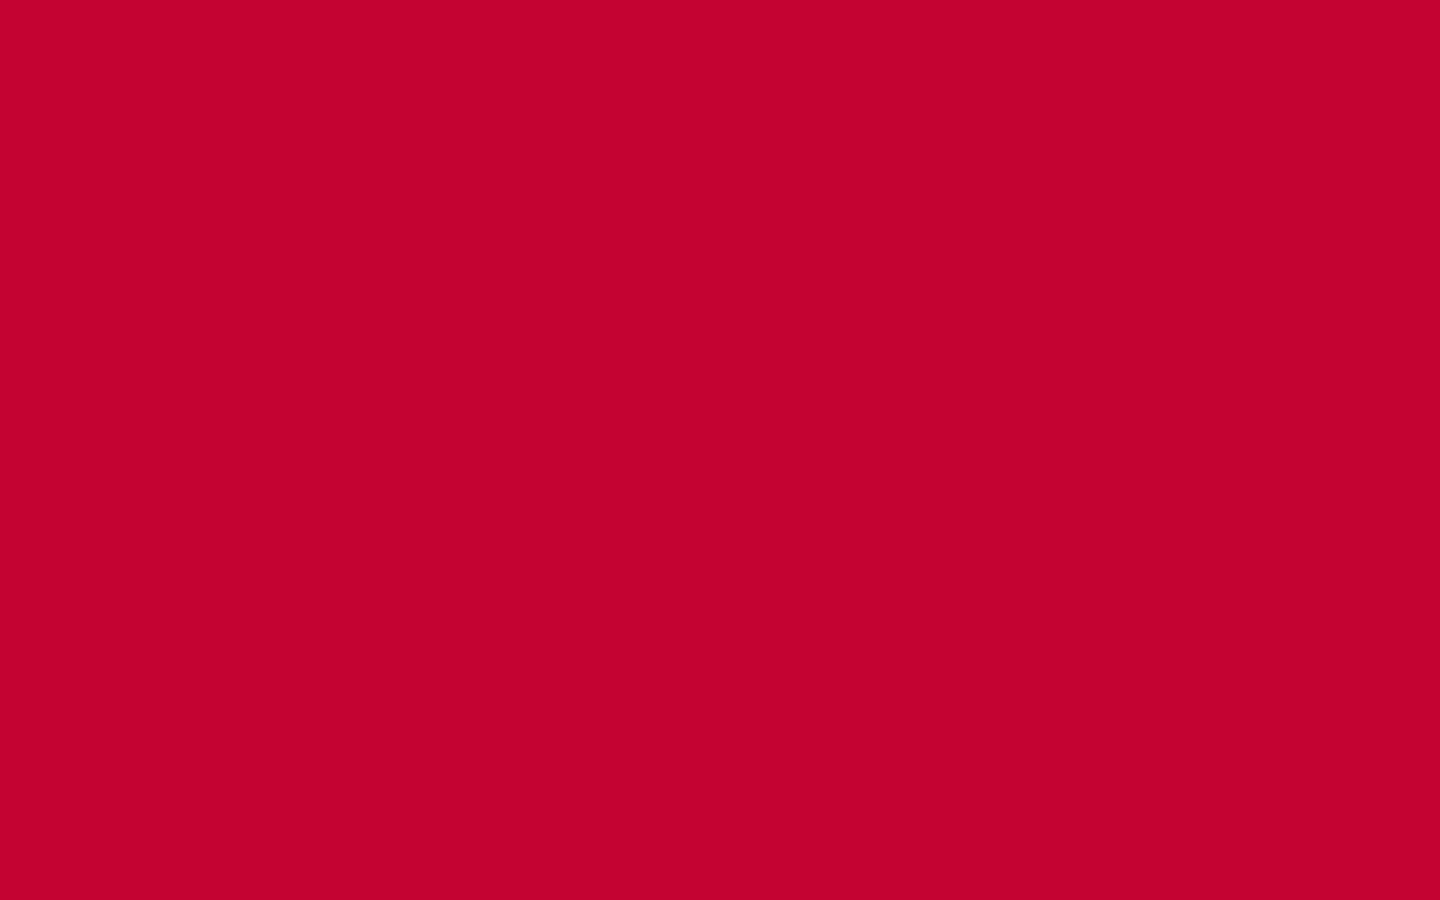 1440x900 Red NCS Solid Color Background